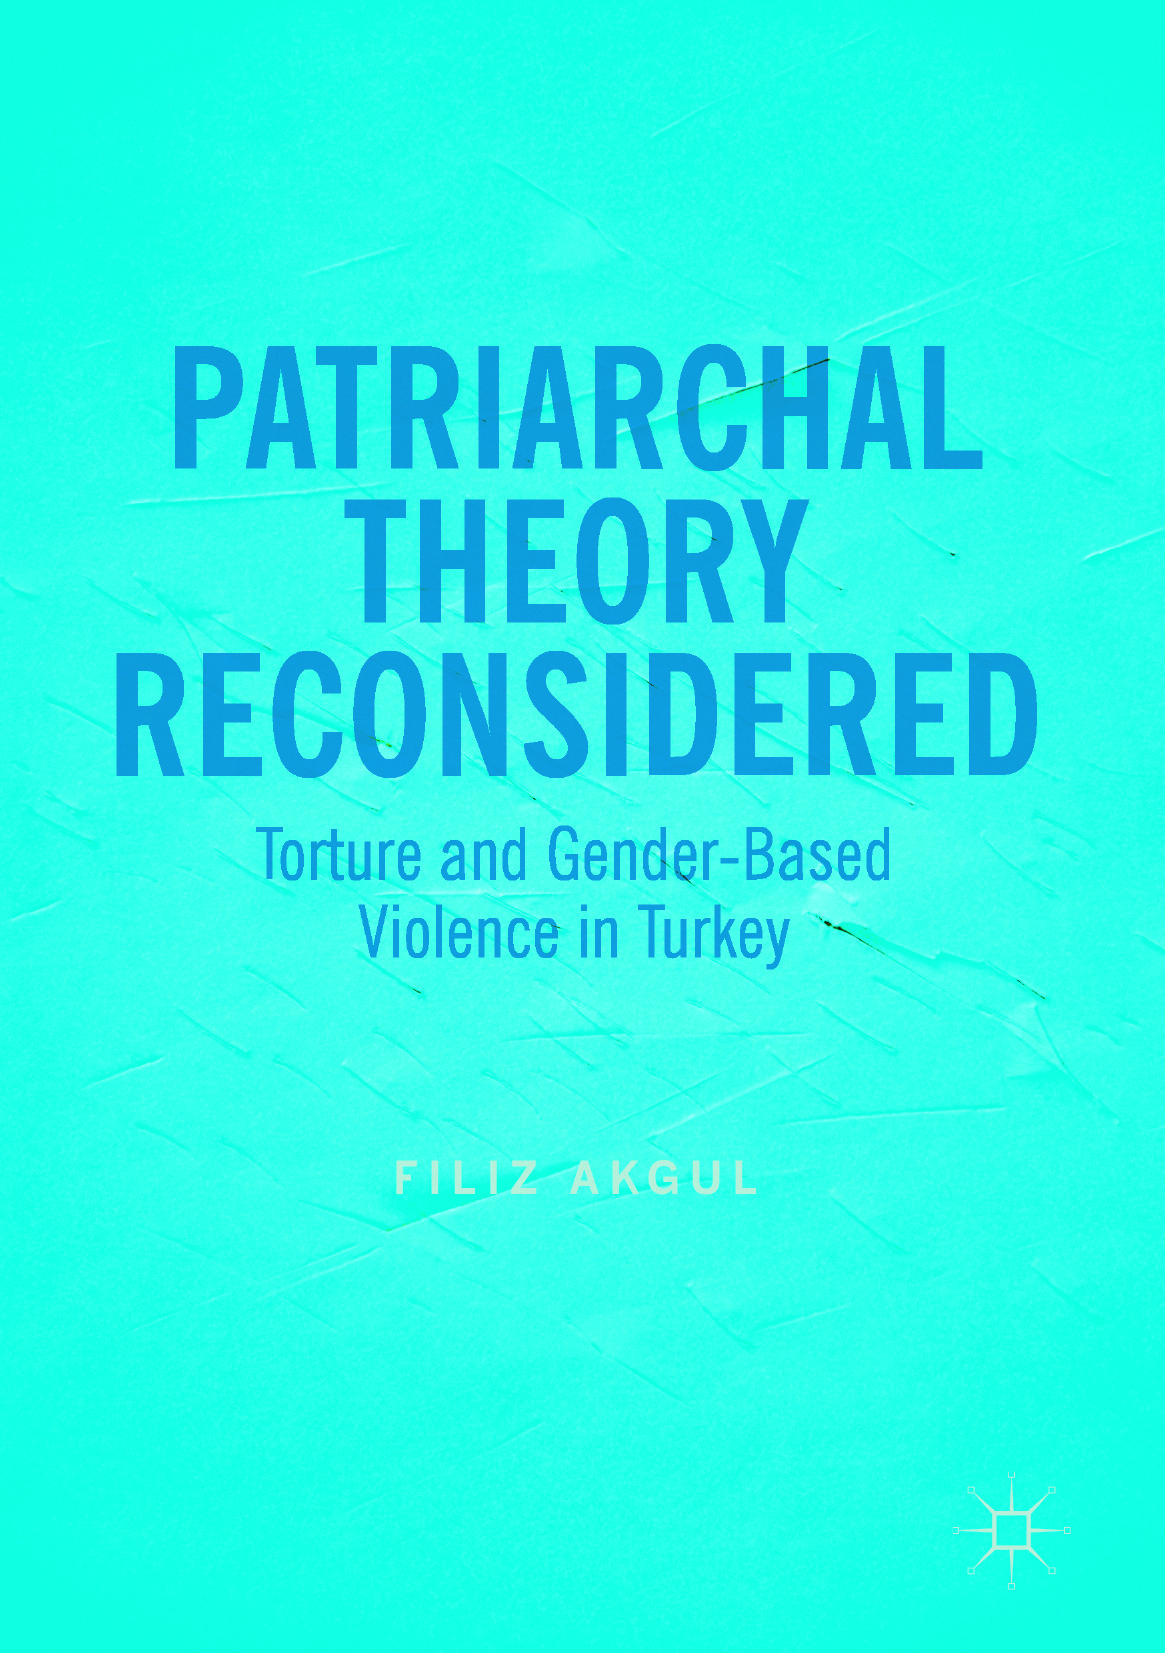 Akgul, Filiz - Patriarchal Theory Reconsidered, ebook